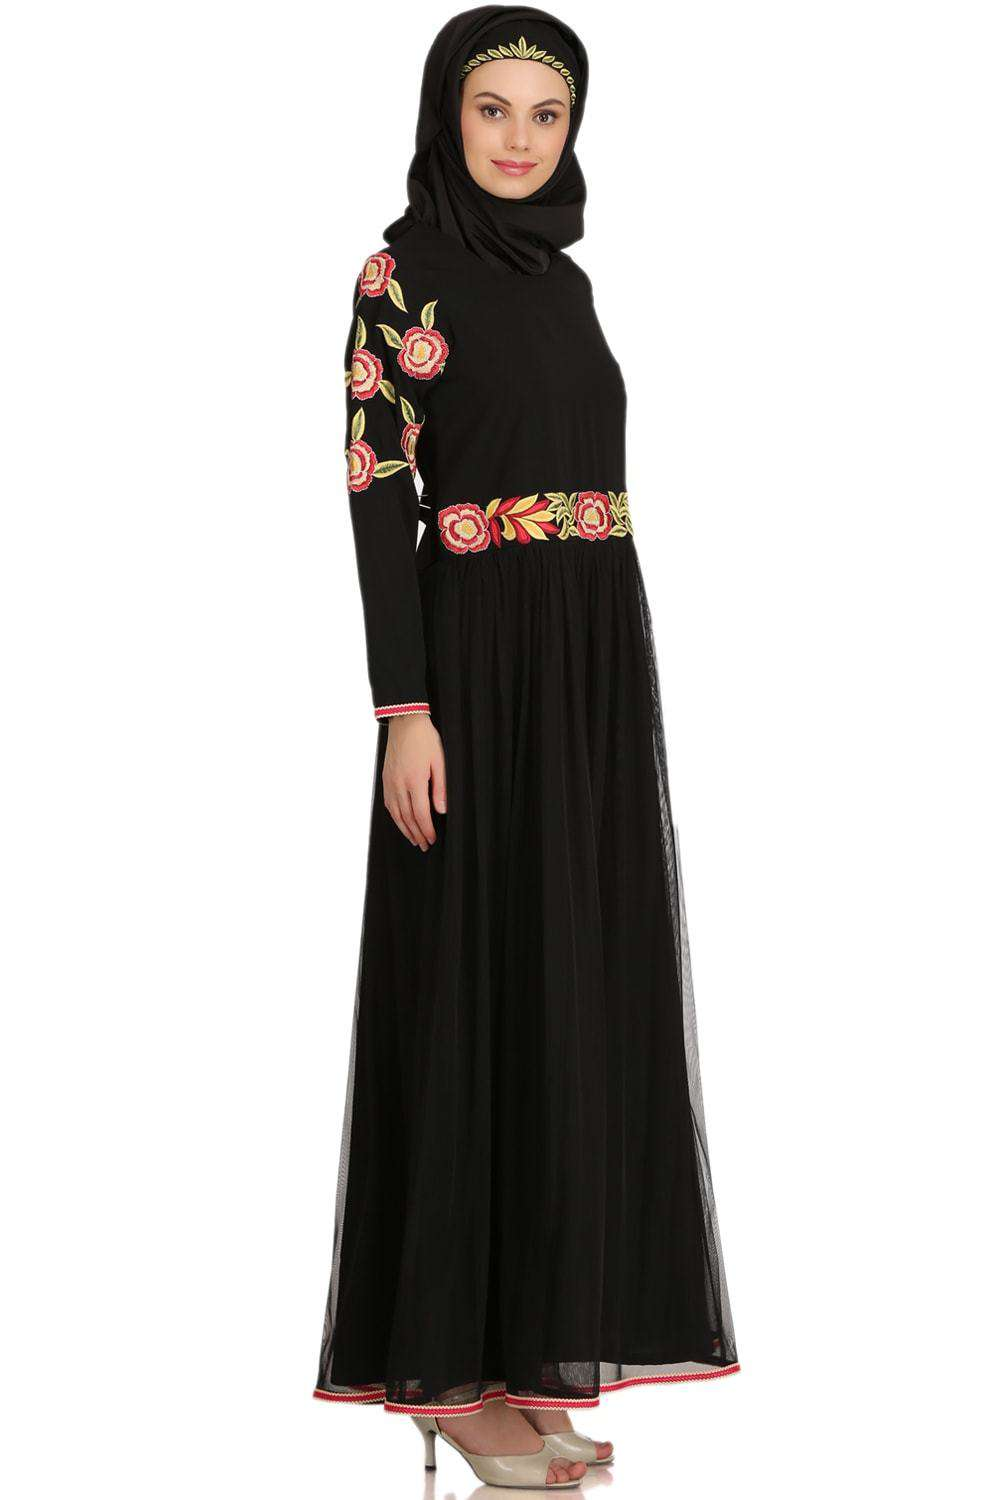 Mumina Black Nida & Net Abaya Side